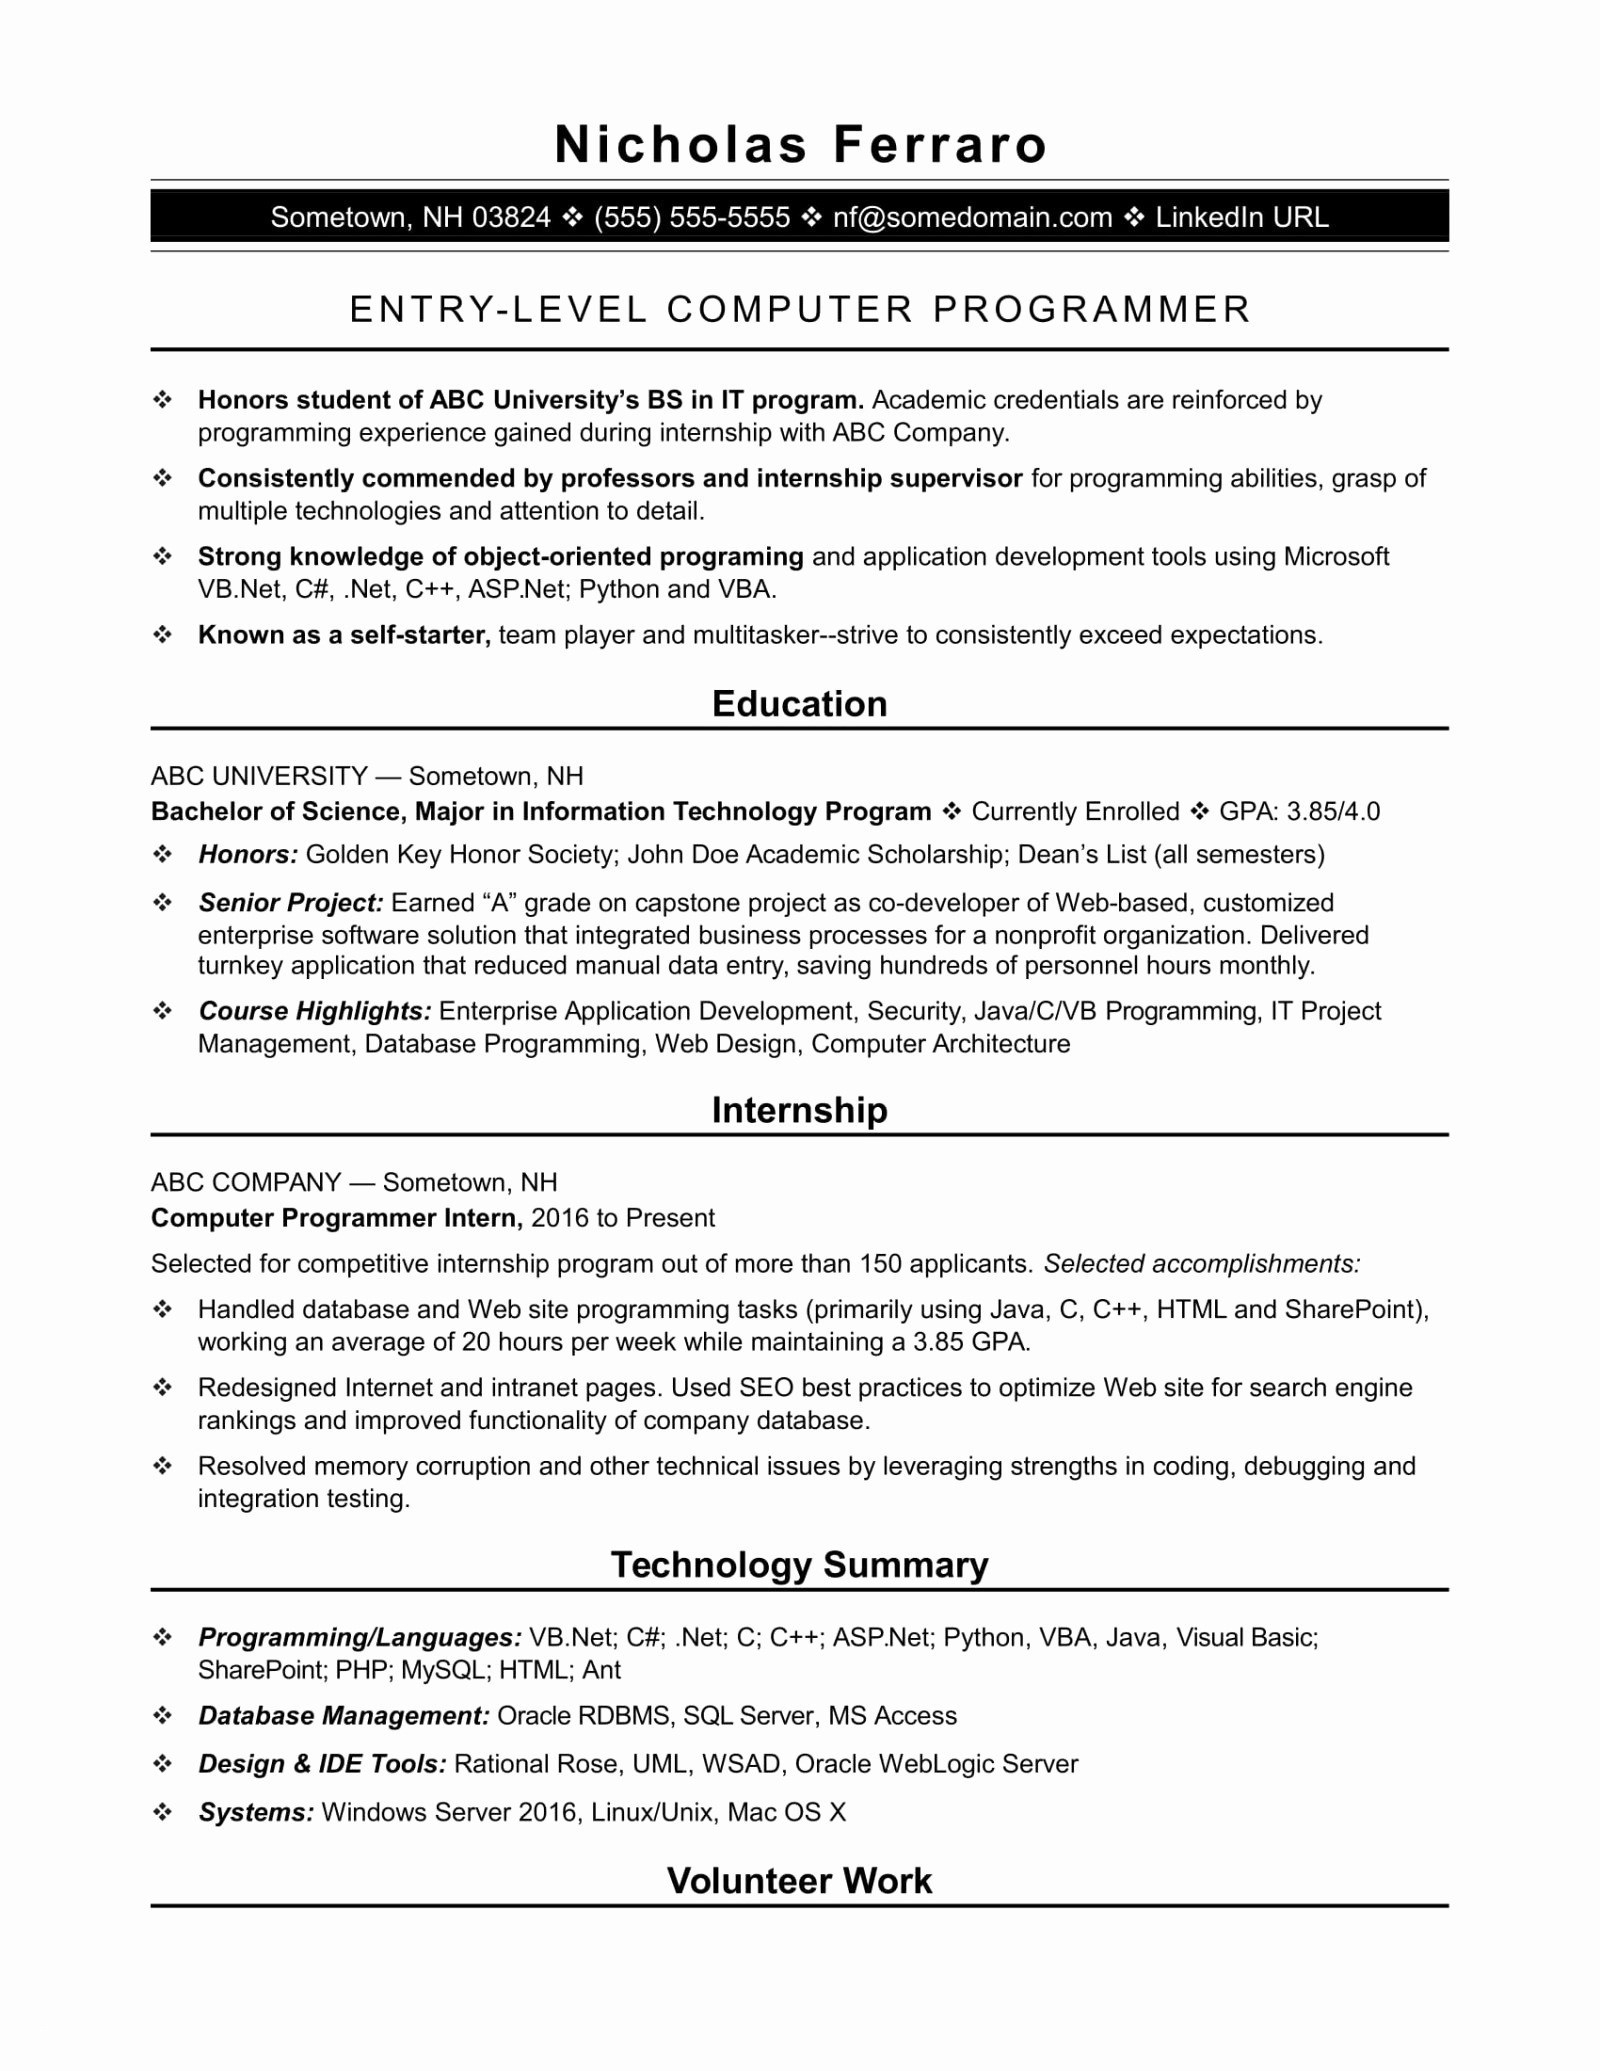 Infantryman Skills Resume - Infantryman Skills Resume Best How to Set Up Resume Fresh Awesome